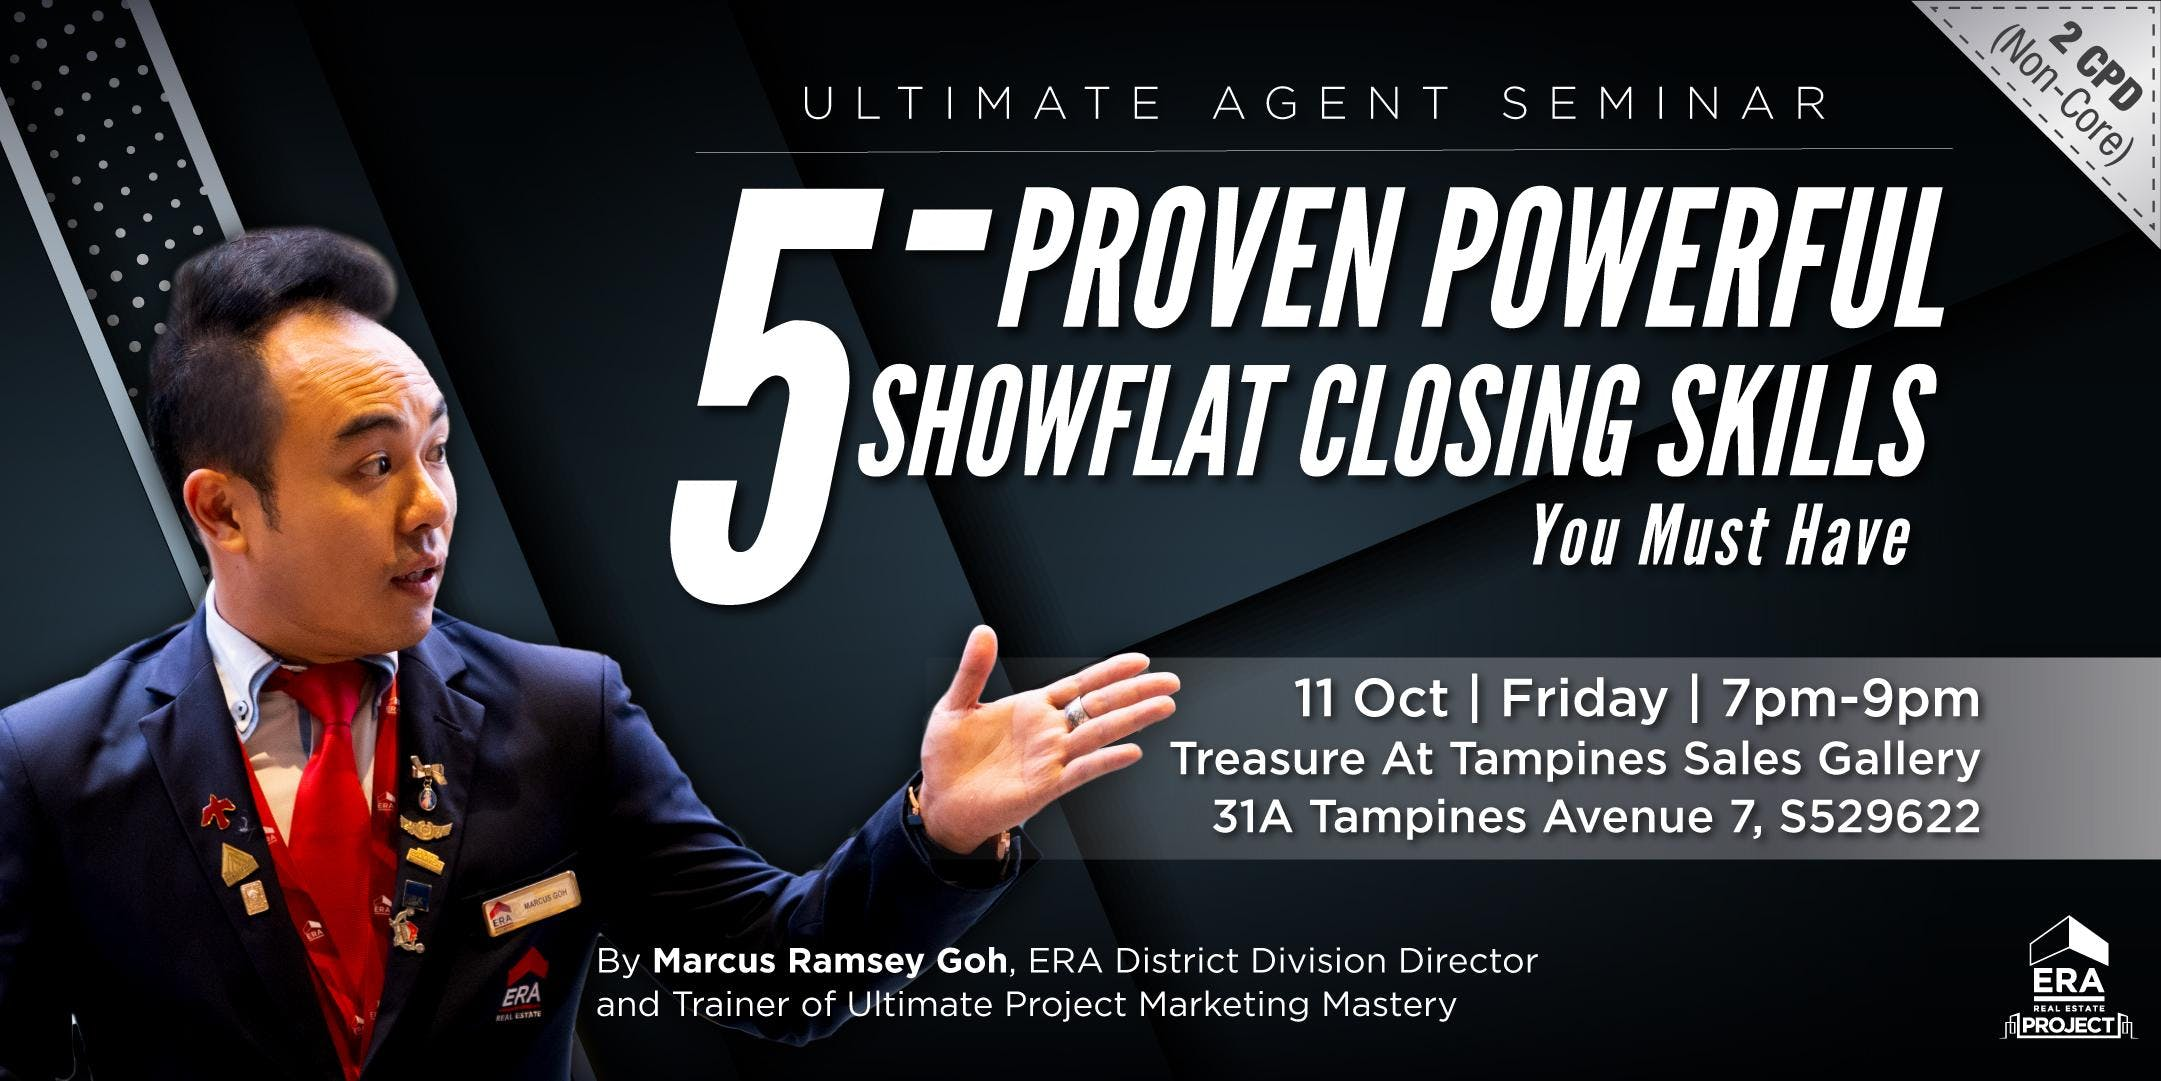 [UAS] 5-Proven Powerful Showflat Closing Skills You Must Have